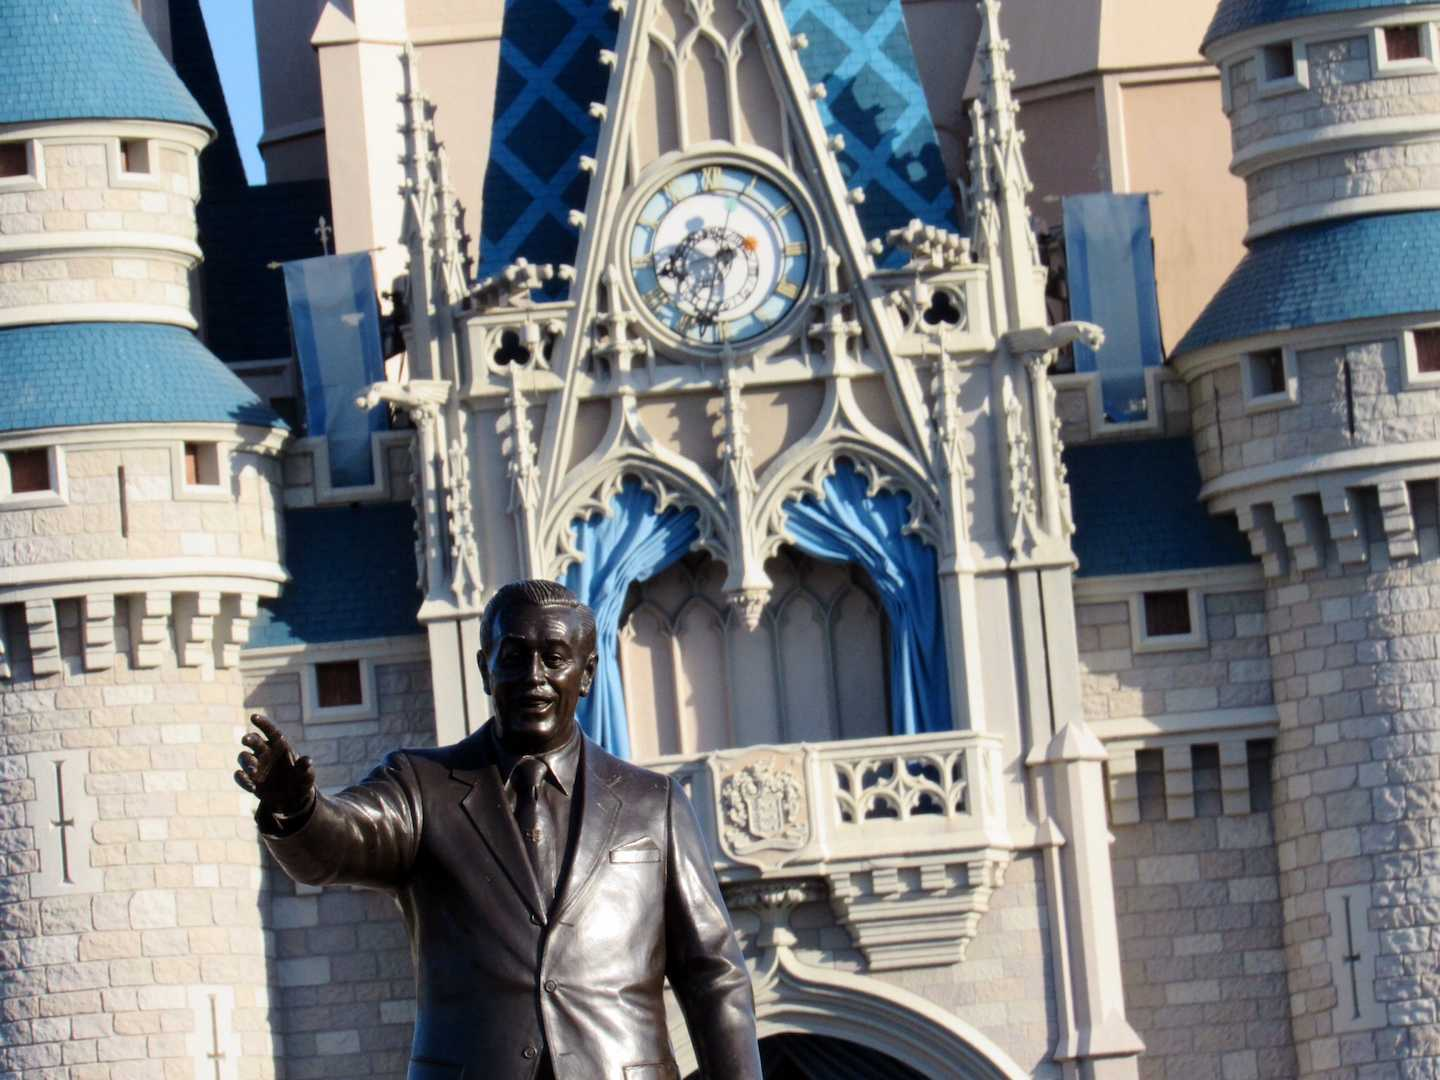 The iconic Walt Disney statue is pictured with Cinderella's Castle in Magic Kingdom.